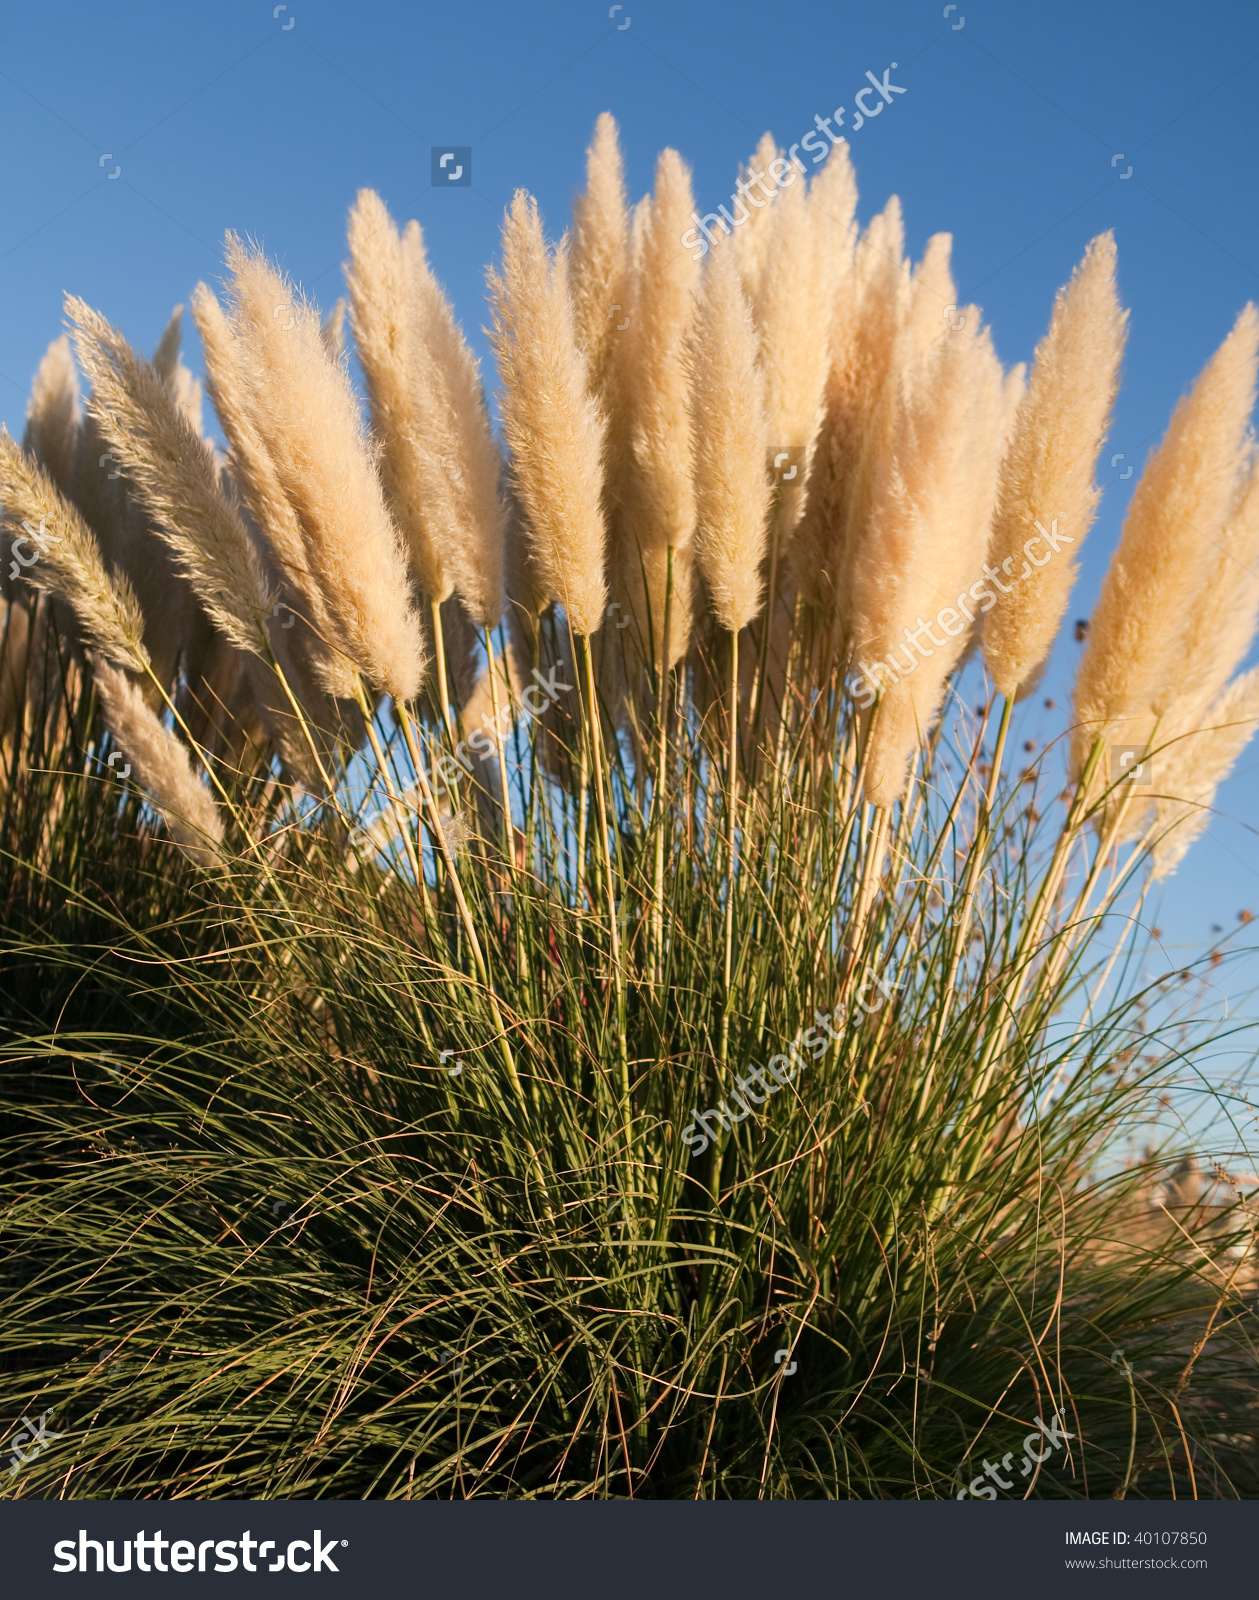 Beautiful Foxtail Looking Yellow Plants Growing Stock Photo.